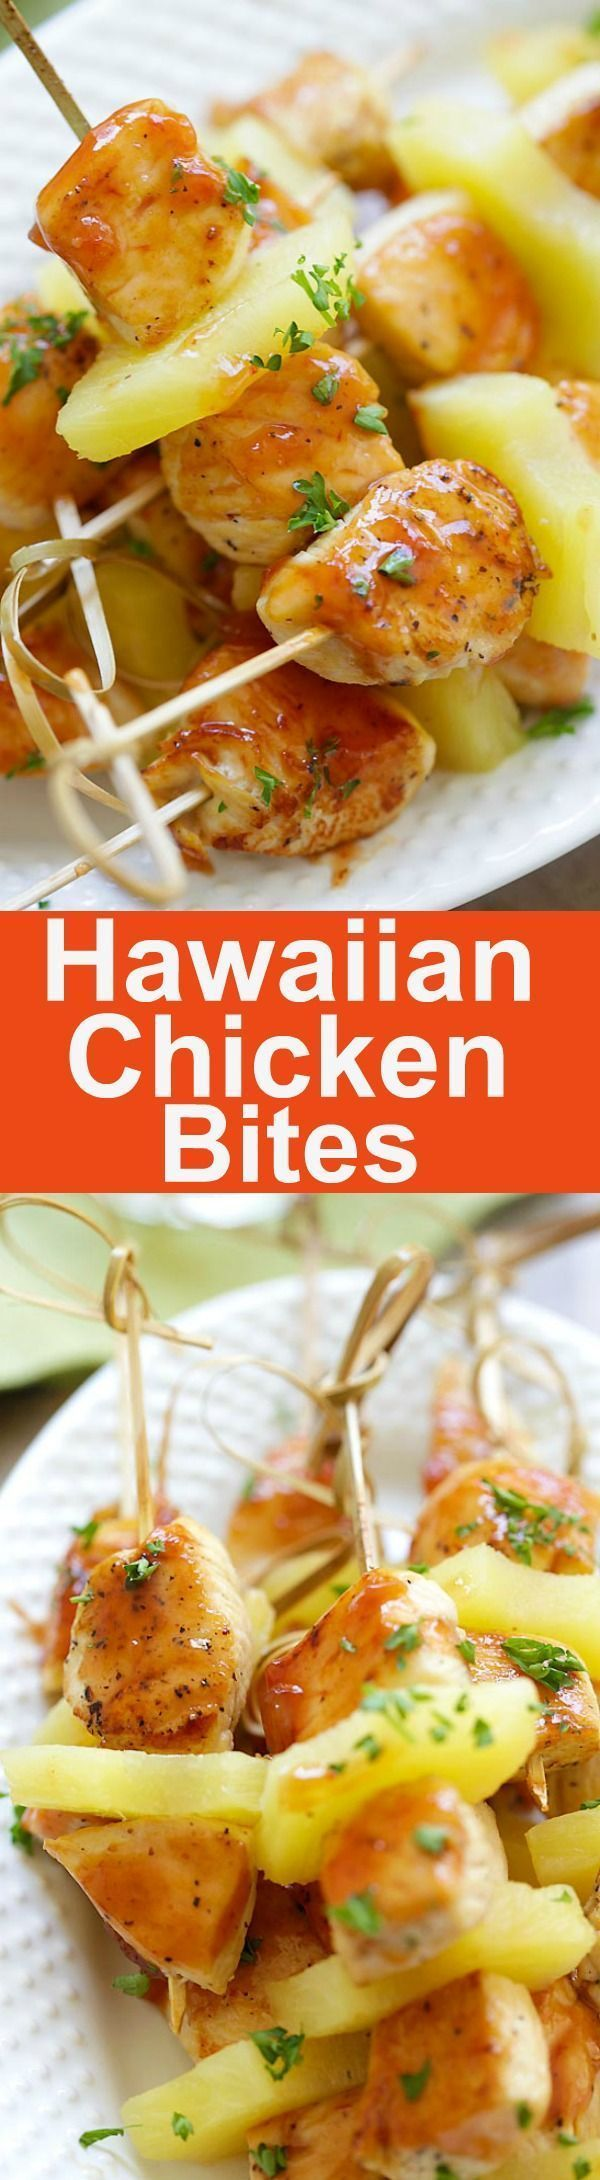 Hawaiian Chicken Bites  amazing chicken skewers with pineapple with Hawaiian BBQ sauce. This recipe is so easy and a crowd pleaser | http://rasamalaysia.com